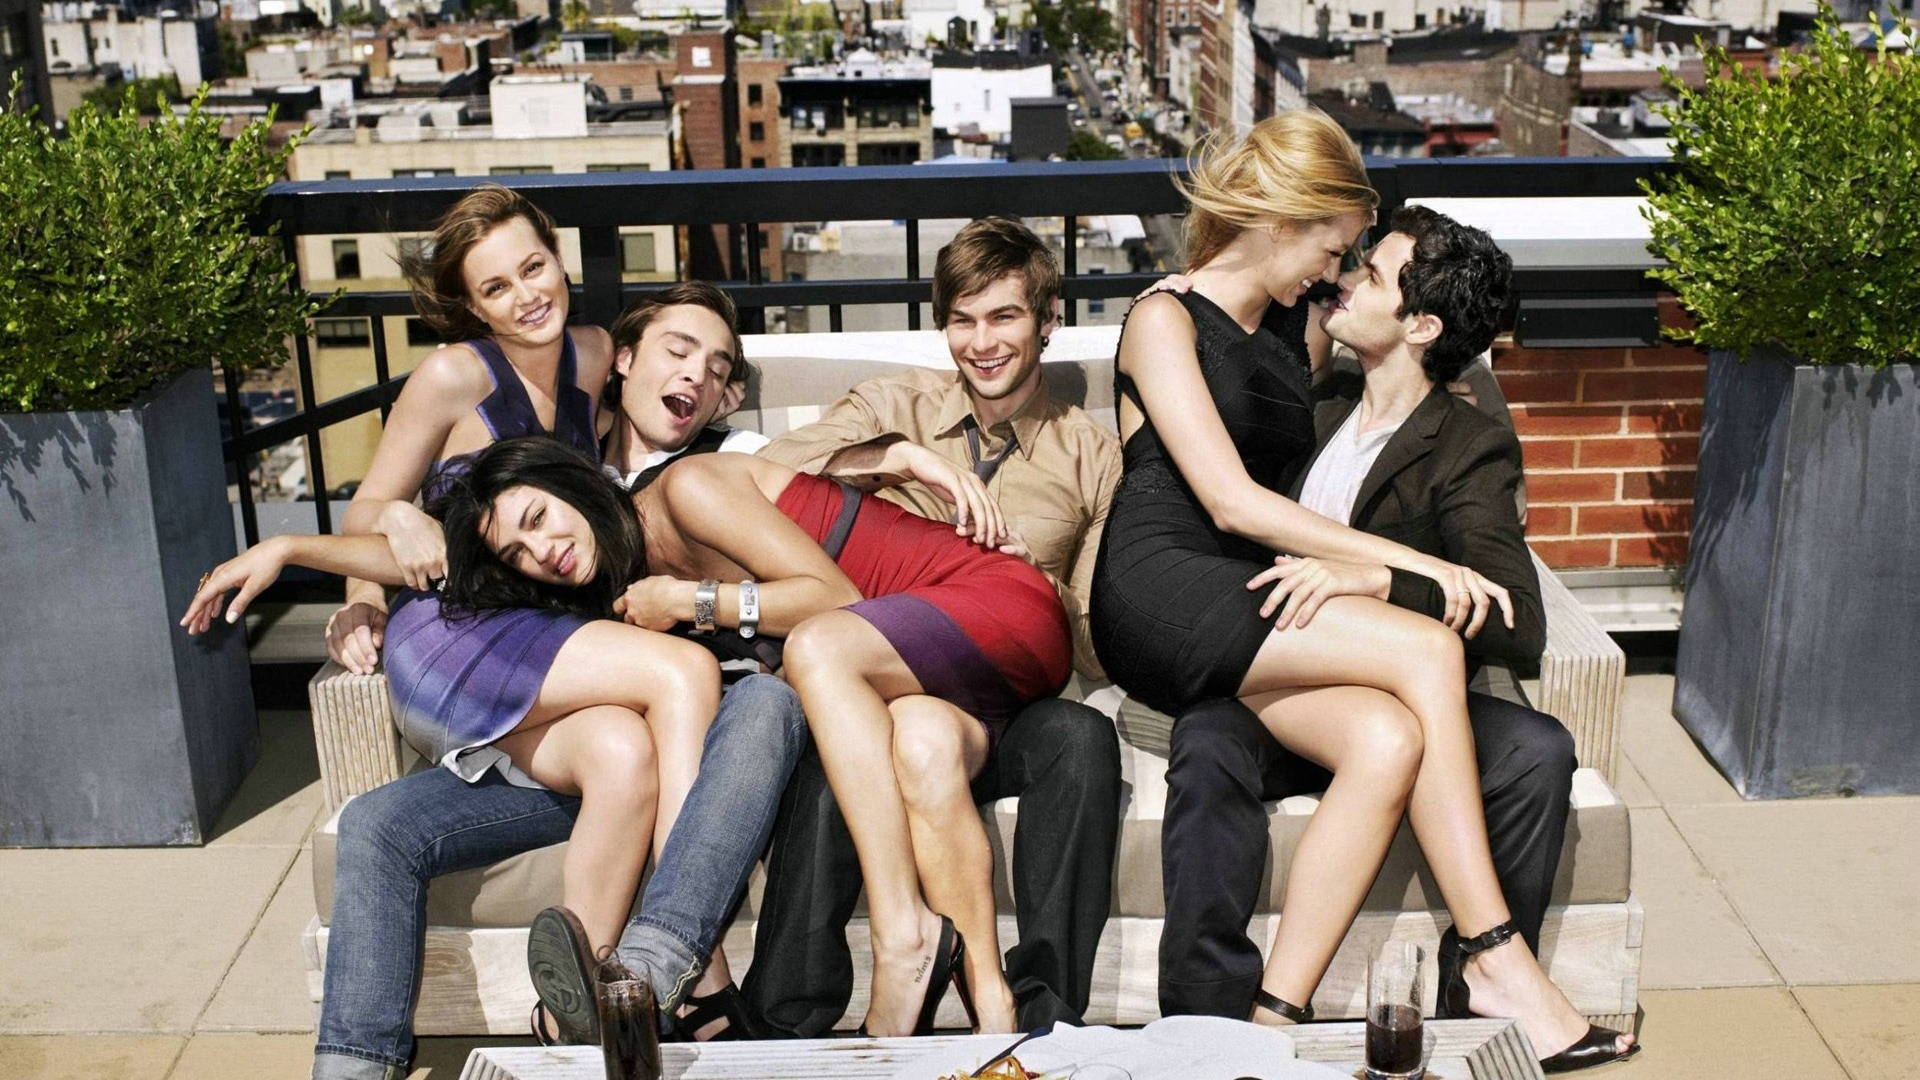 an analysis of the tv show gossip girl Last night, gossip girl went smugly into that glittery night after six seasons   television | by judy berman | december 18, 2012  but who could have  predicted the show would also end on such a misogynistic note (for the.